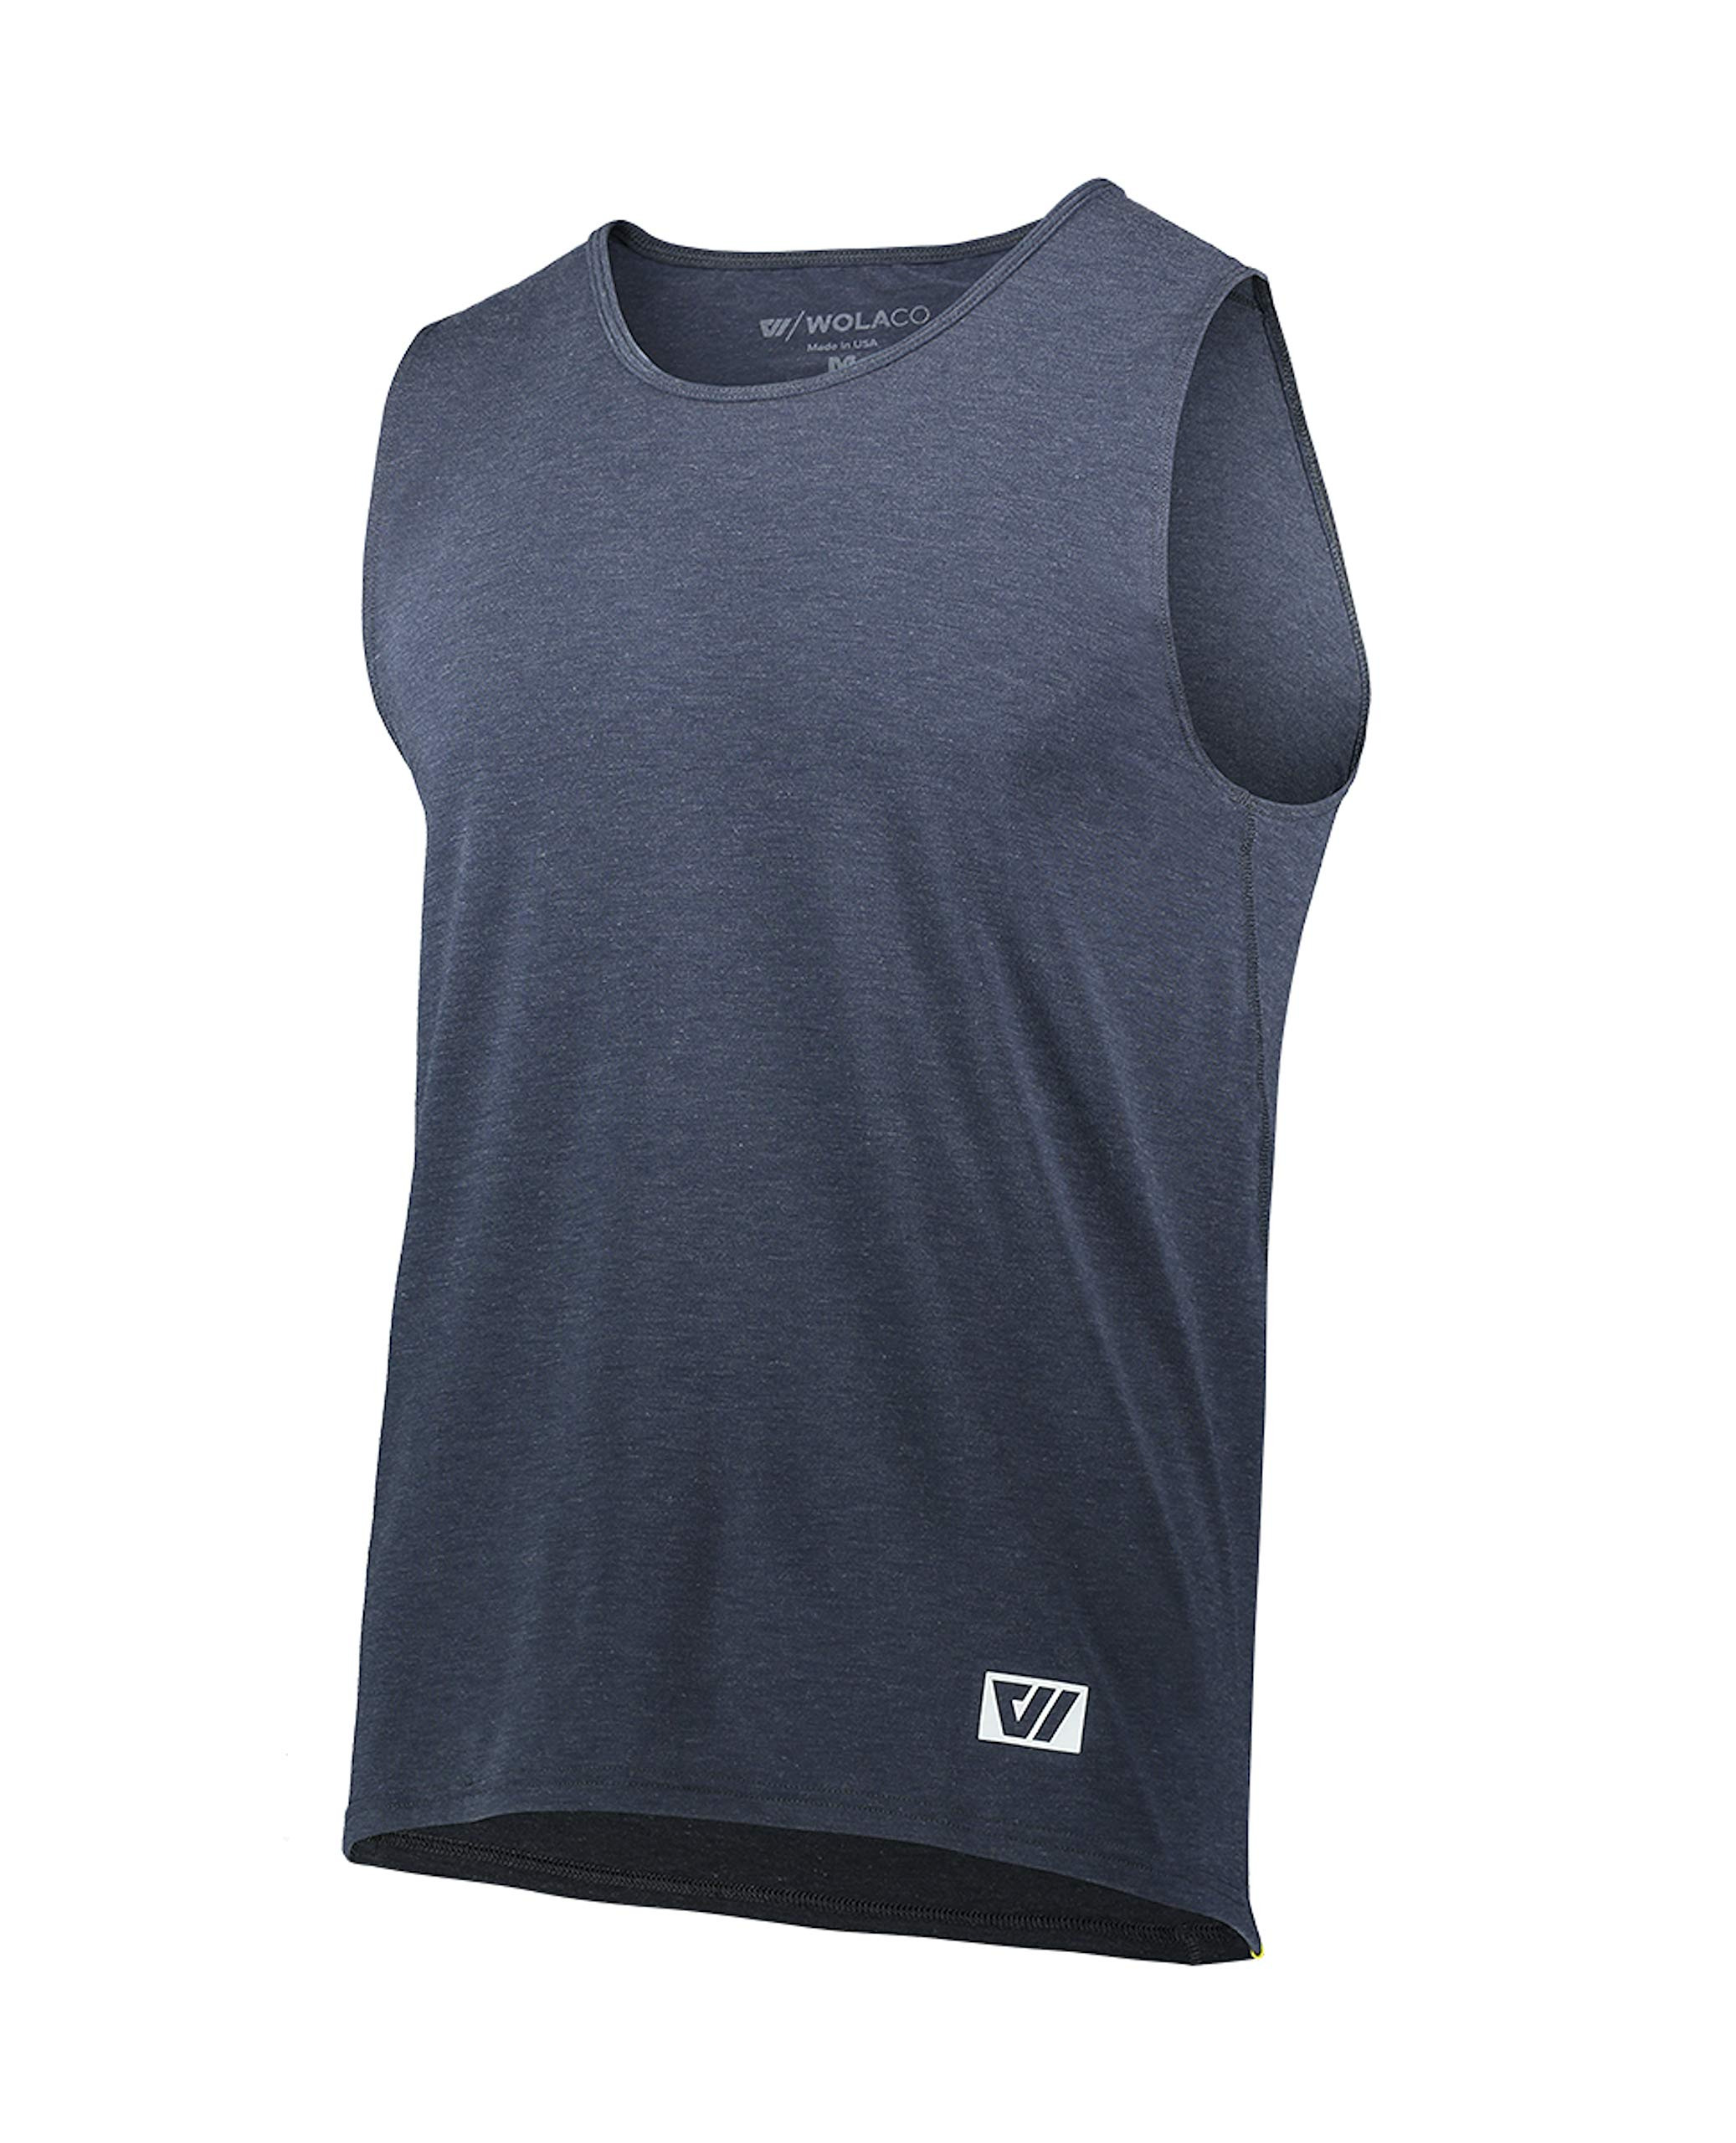 WOLACO Clinton Featherweight Technical Athletic/Performance Men's Tank Top,